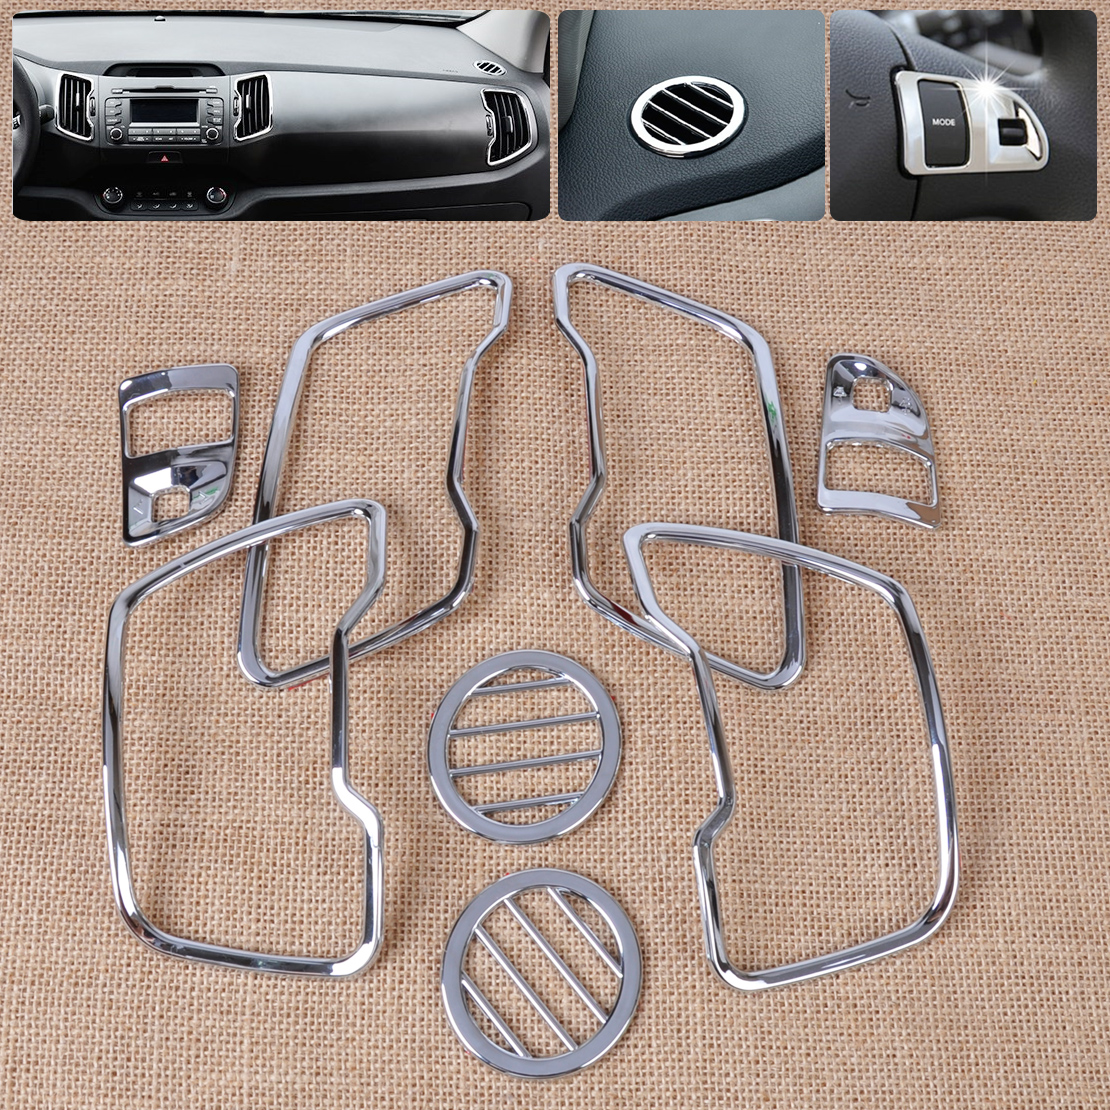 beler Silver 8pcs Chrome Steering Wheel + Air Vent Cover Trim Kit Car Accessories for Kia Sportage R 2011 2012 2013 2014 2015